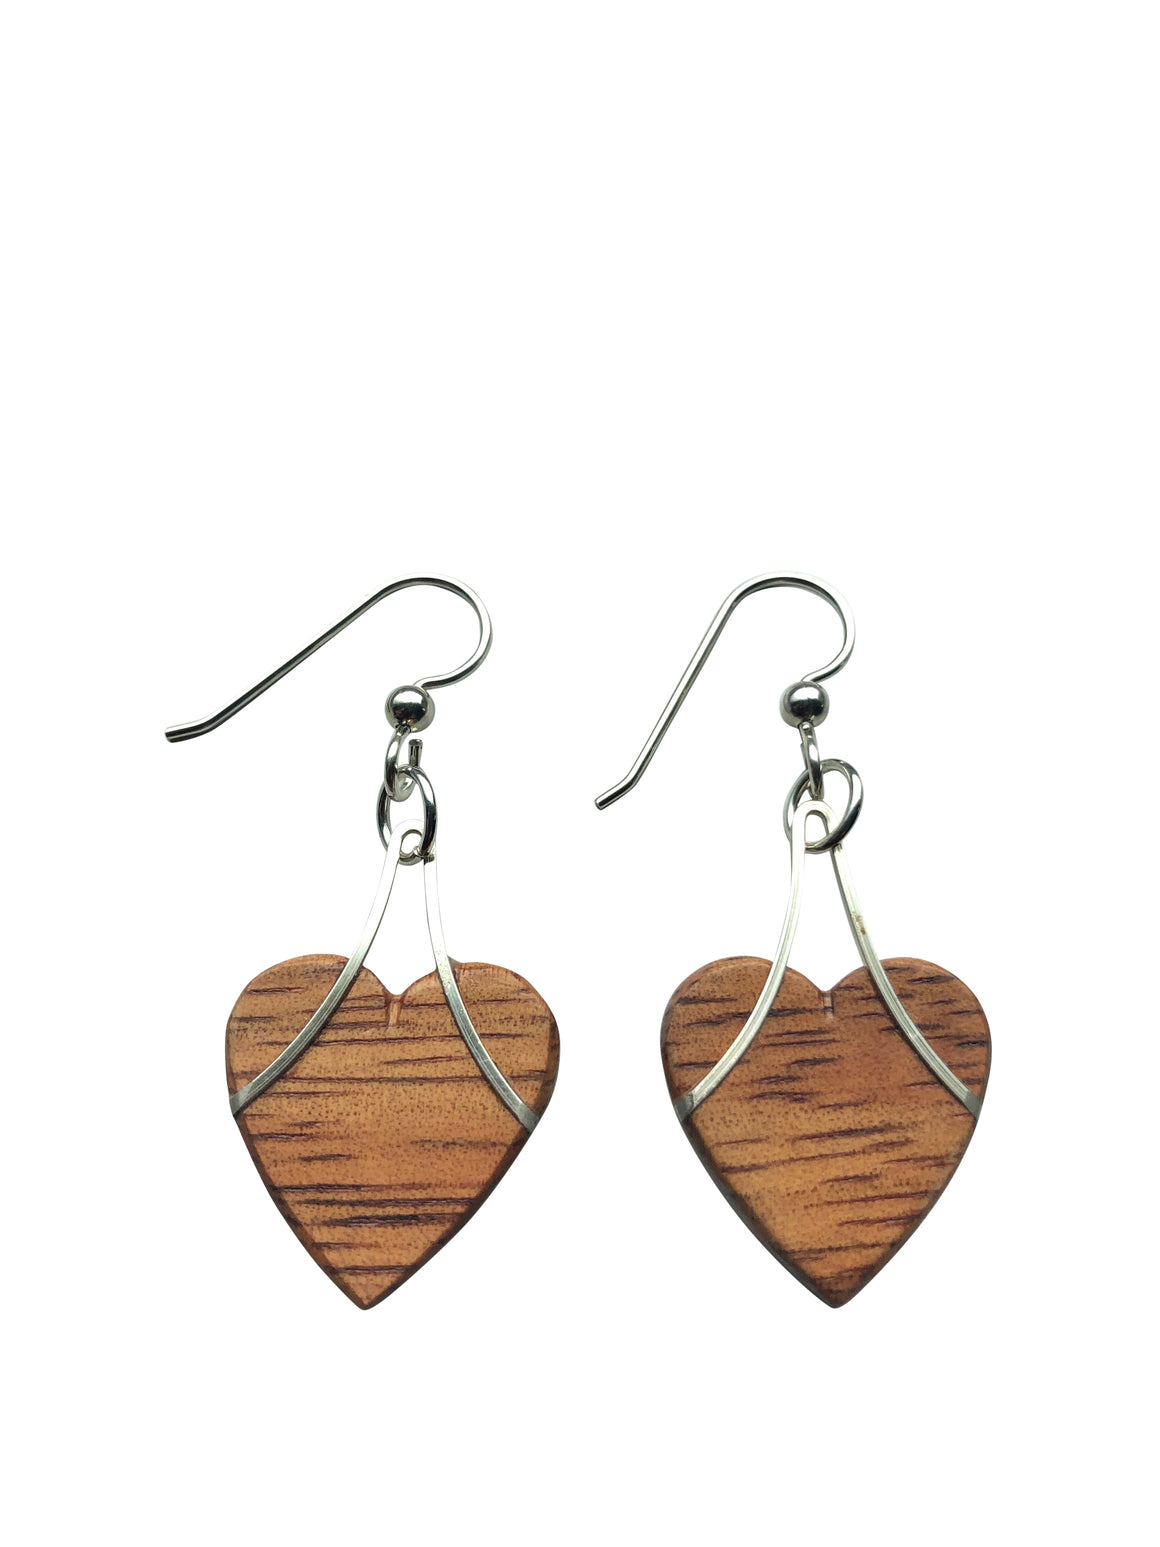 Earrings - Hearts Hawaiian Koa